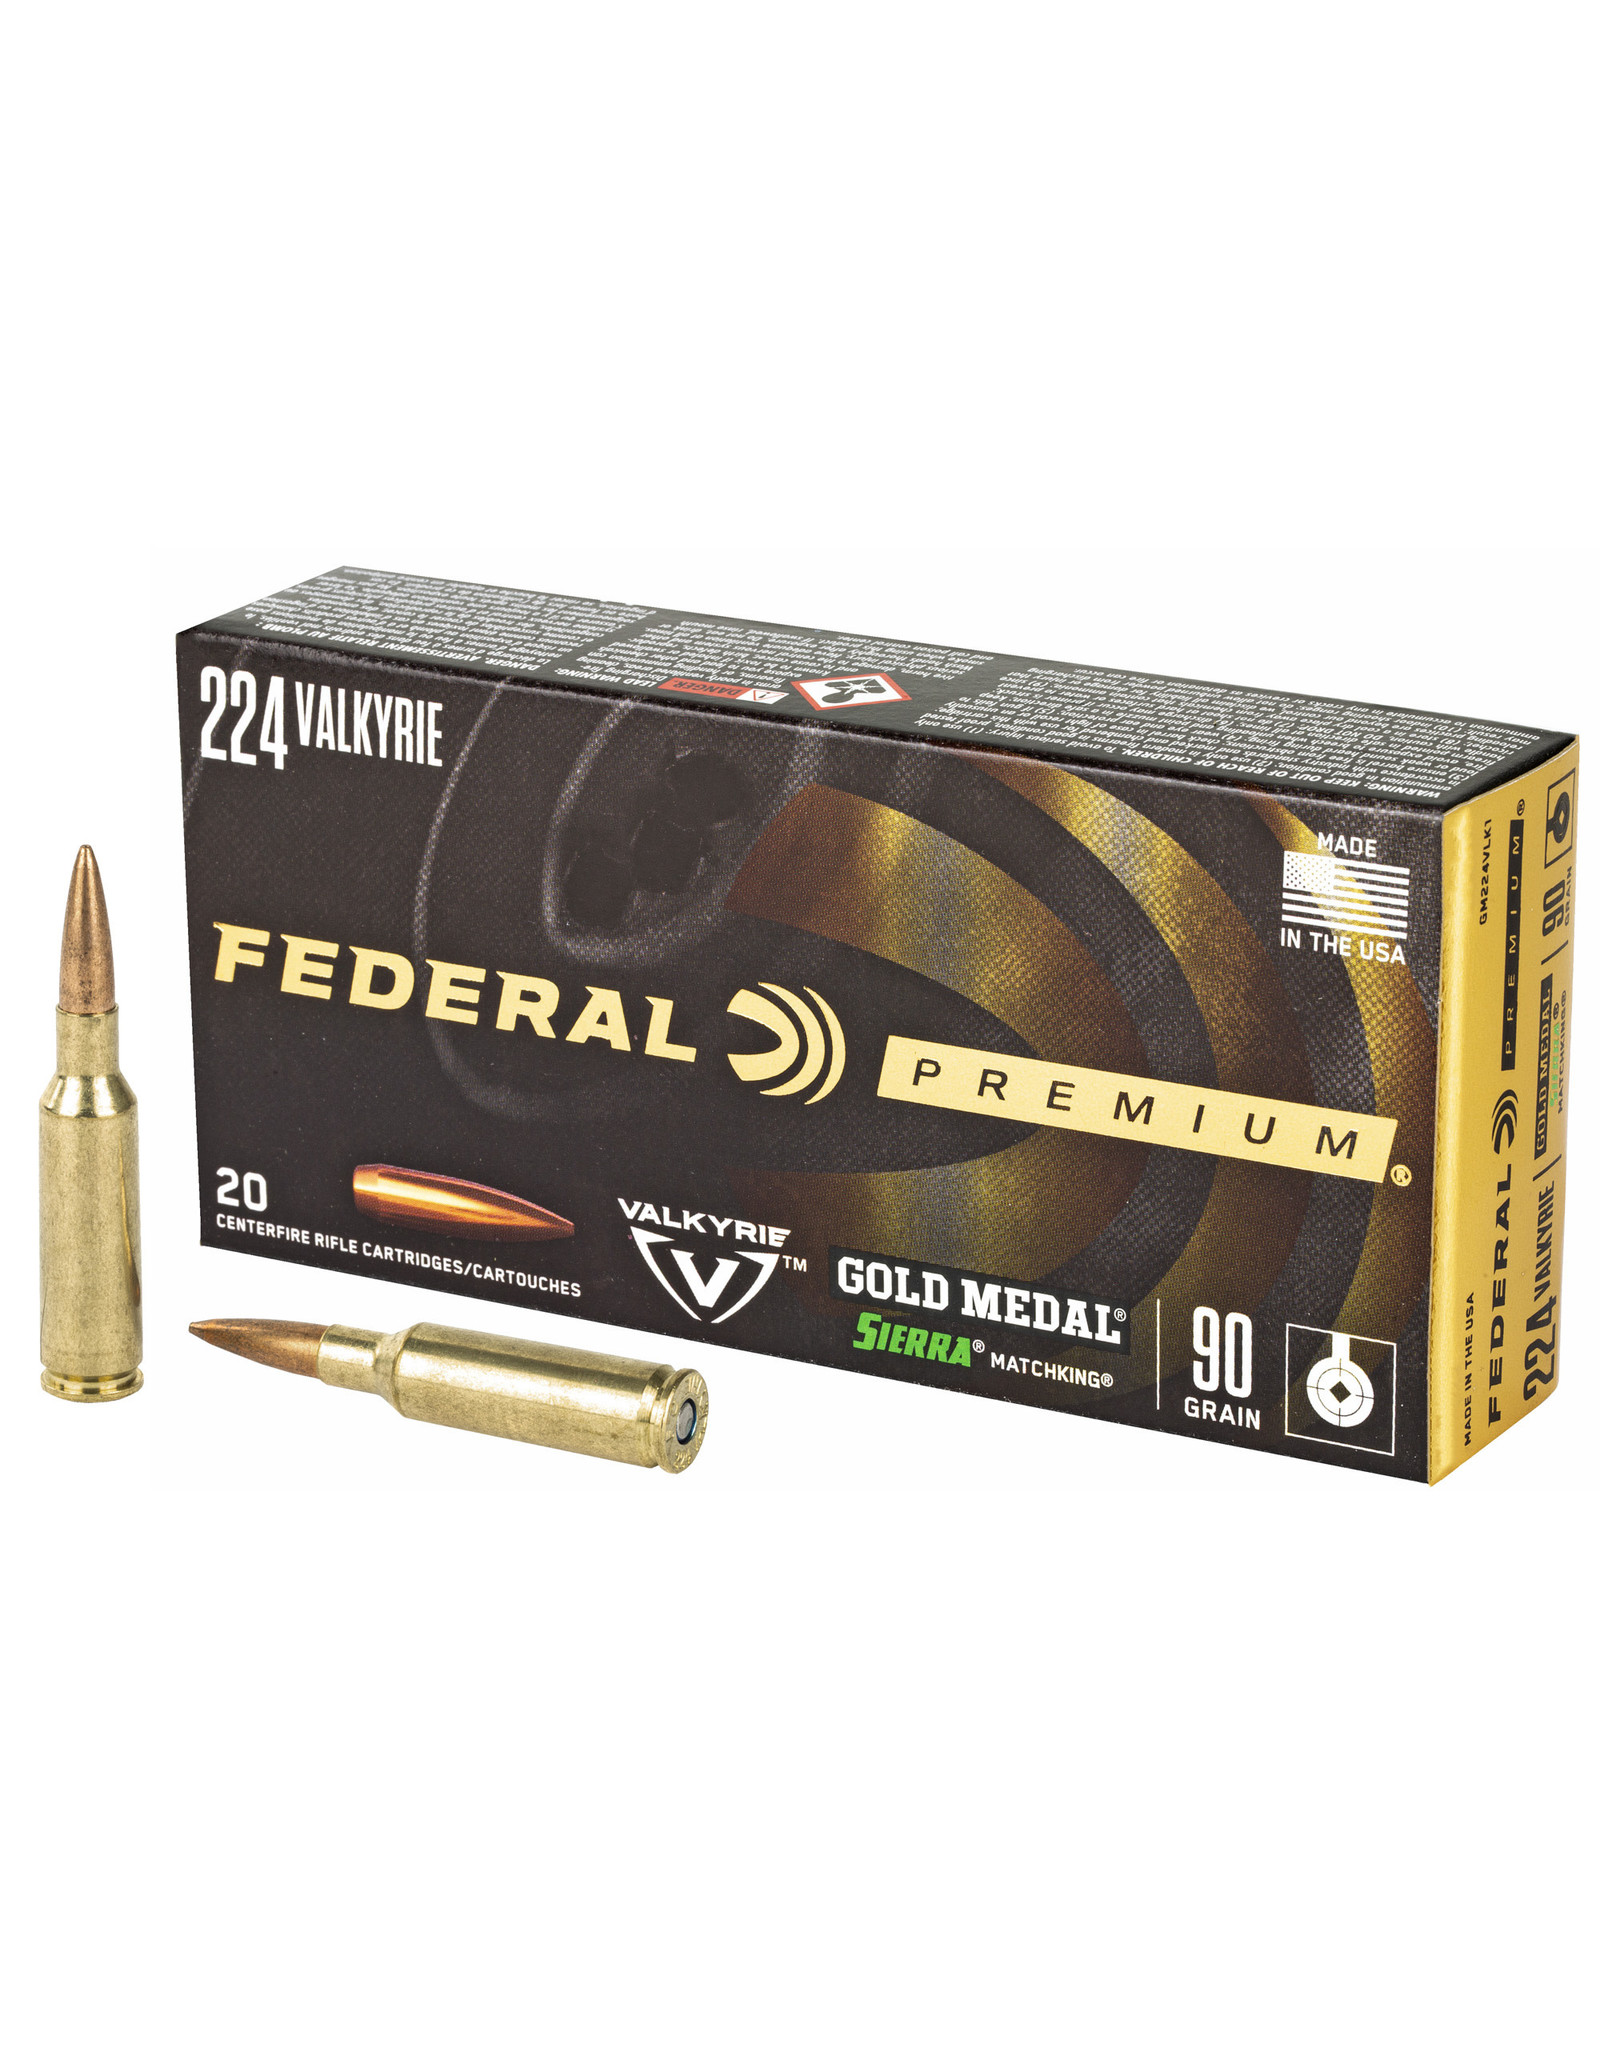 Federal Federal - 224 Valkyrie - 90gr Matchking - 20rd